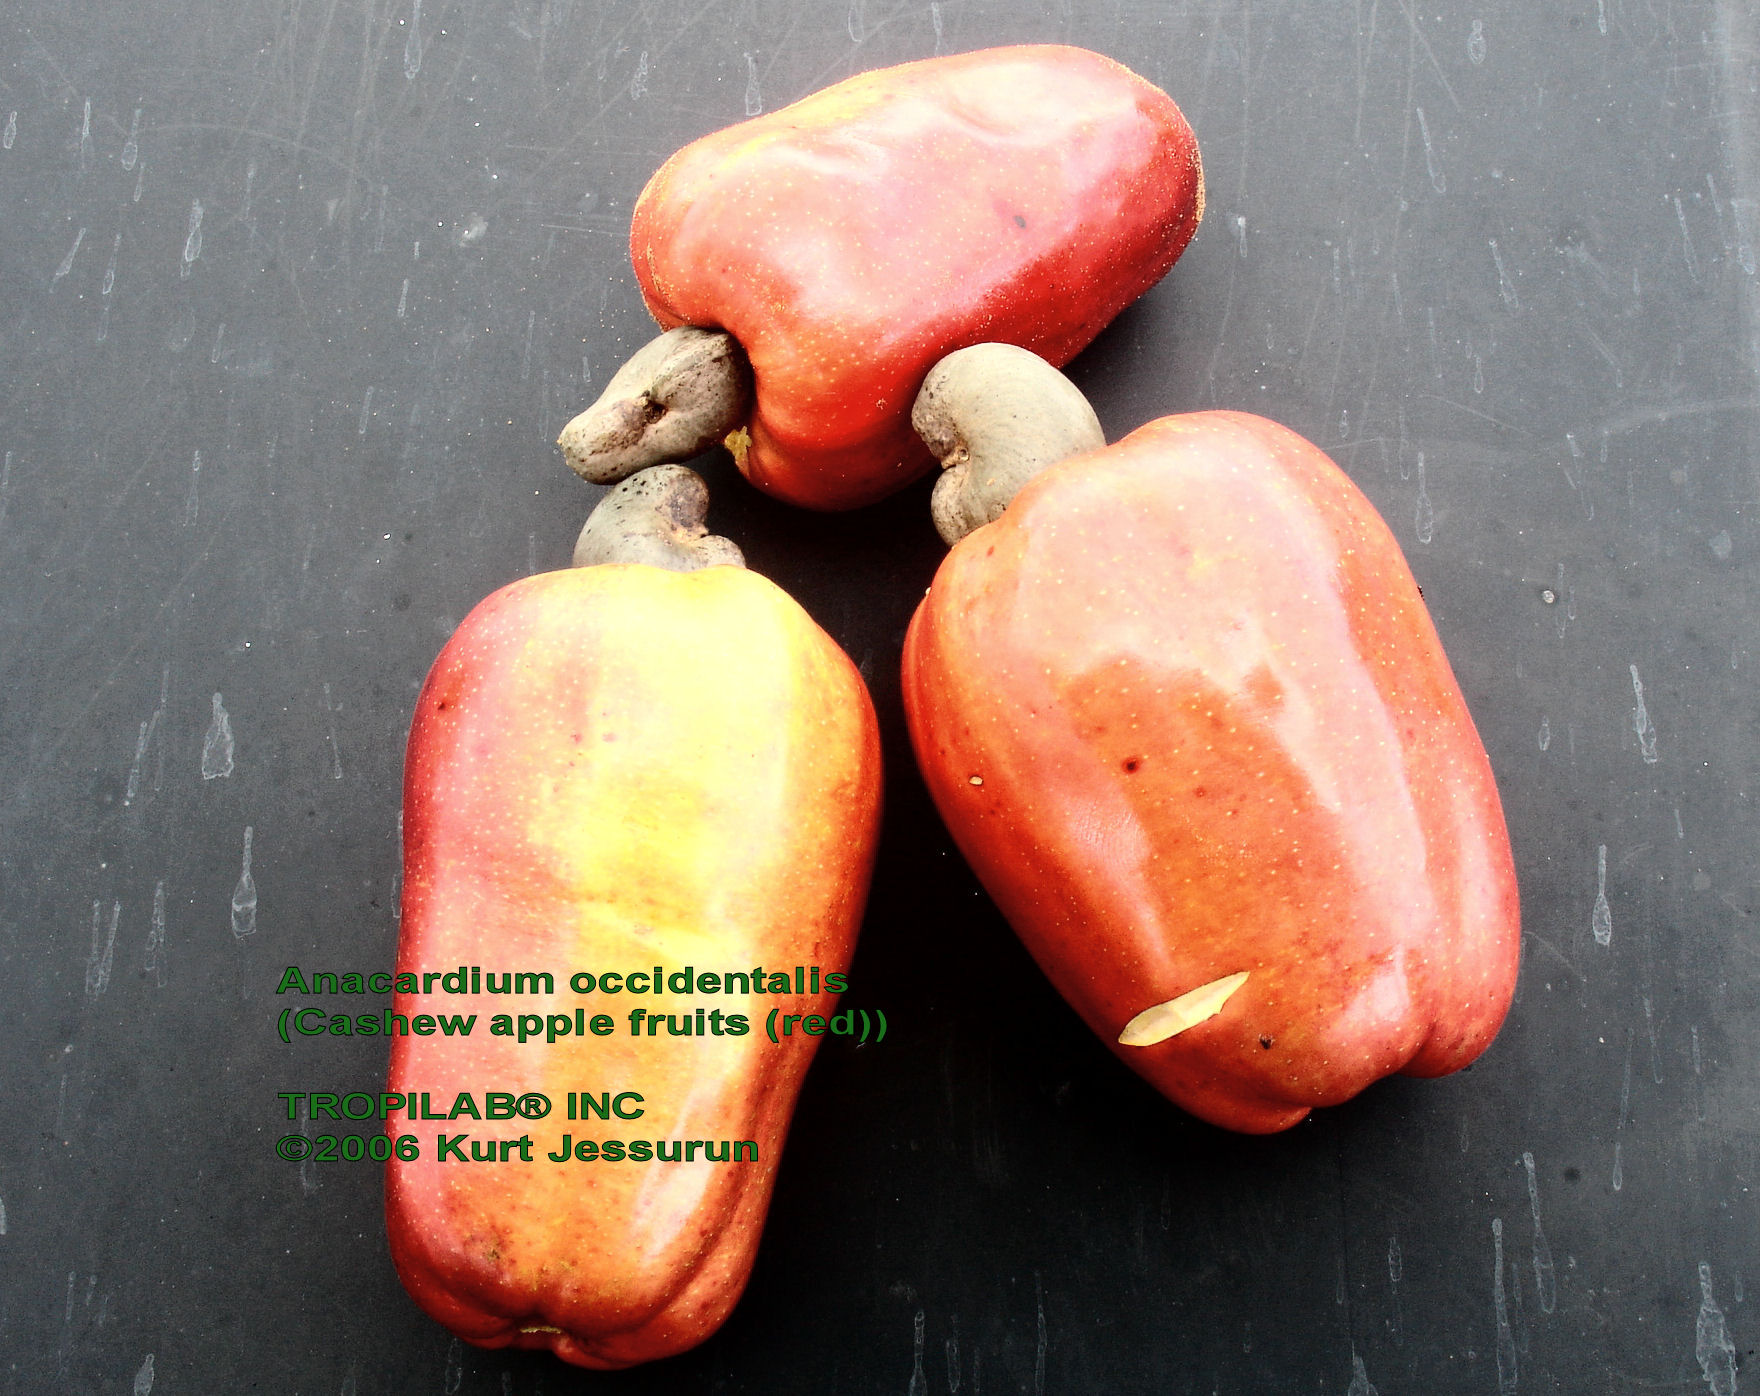 Anacardium occidentale - Cashew apple